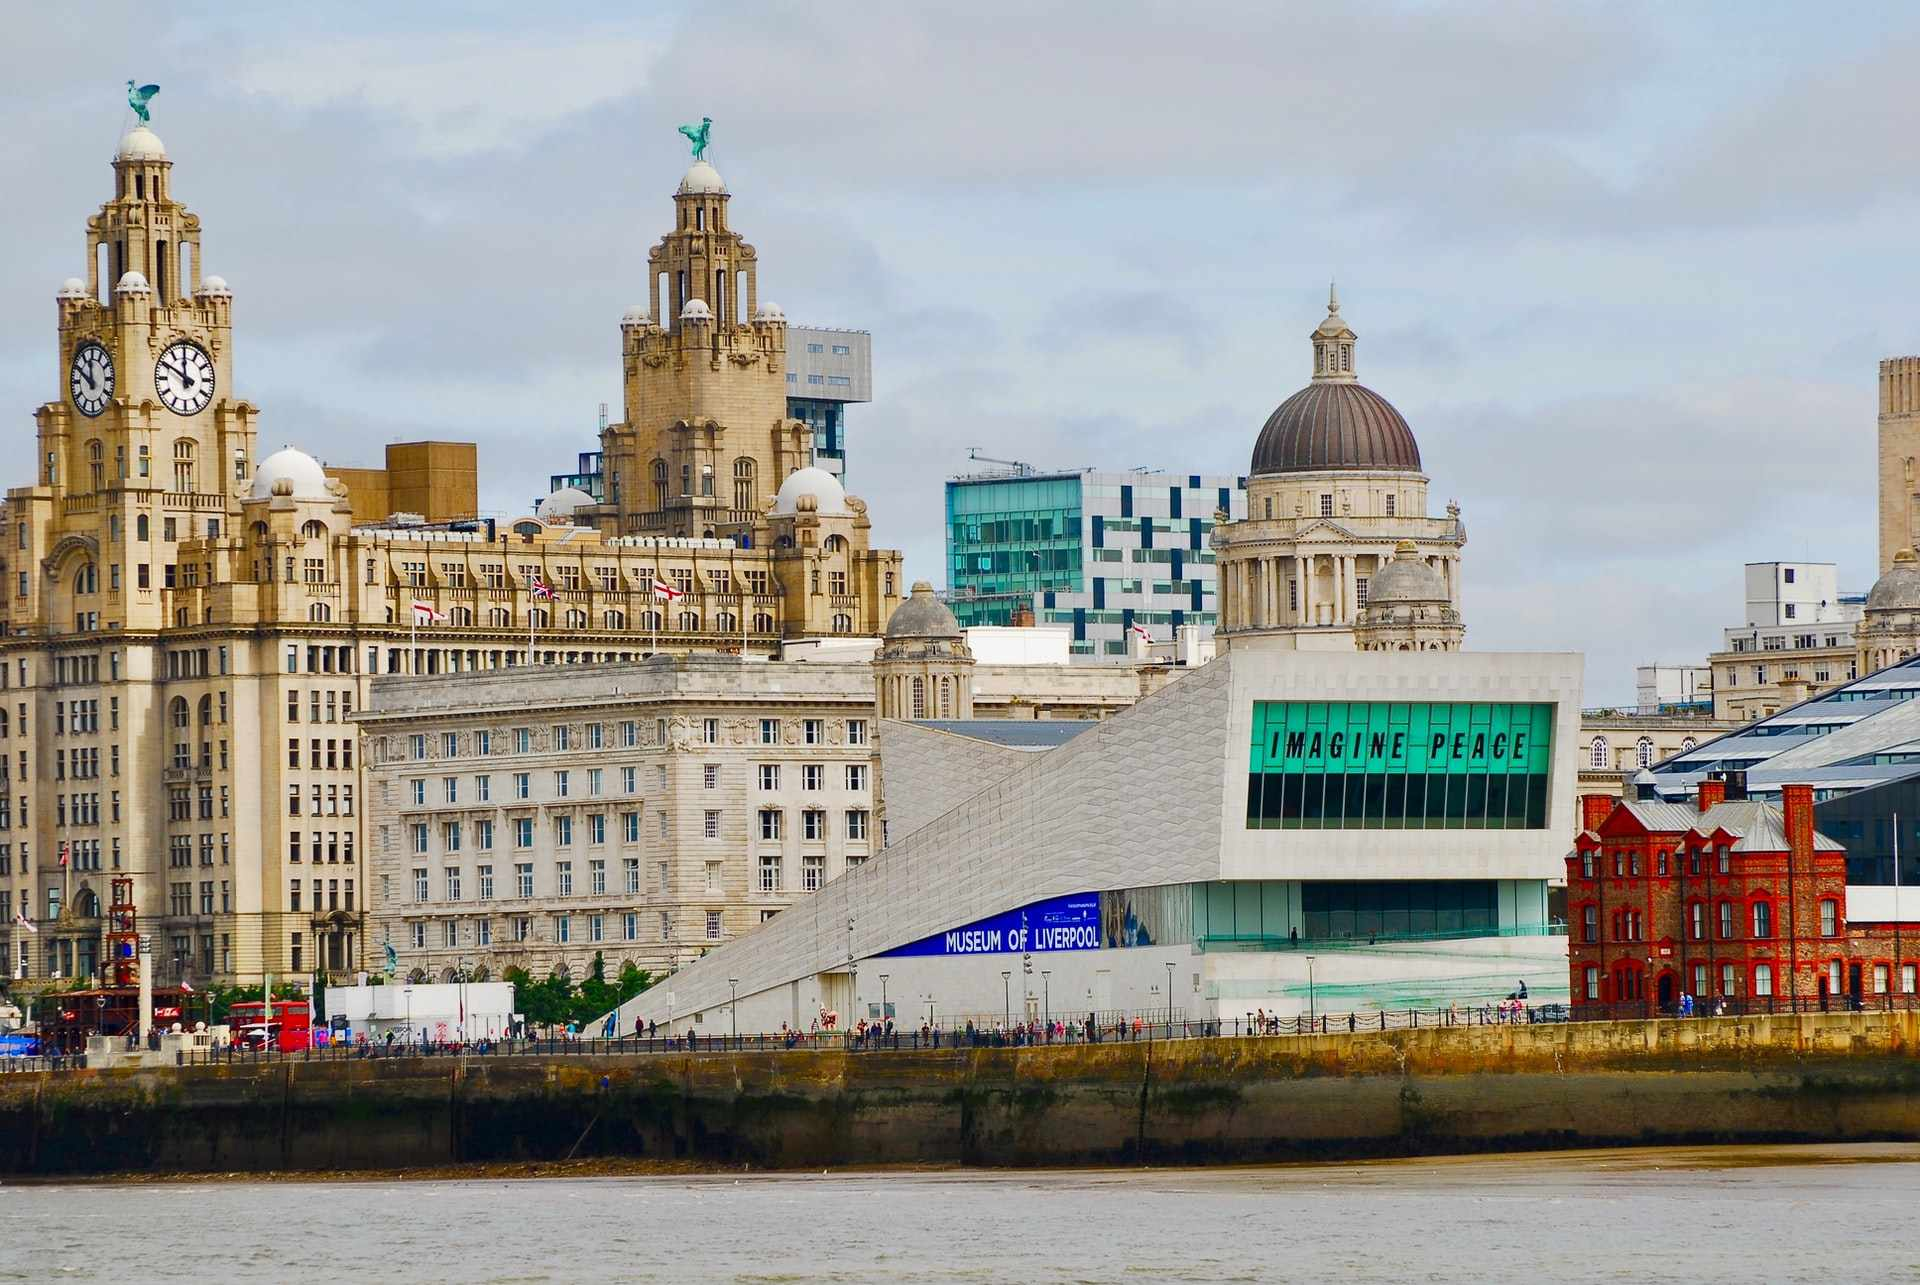 museum-of-liverpool-on-liverpool-docks-and-river-from-across-the-city-on-a-cloudy-day